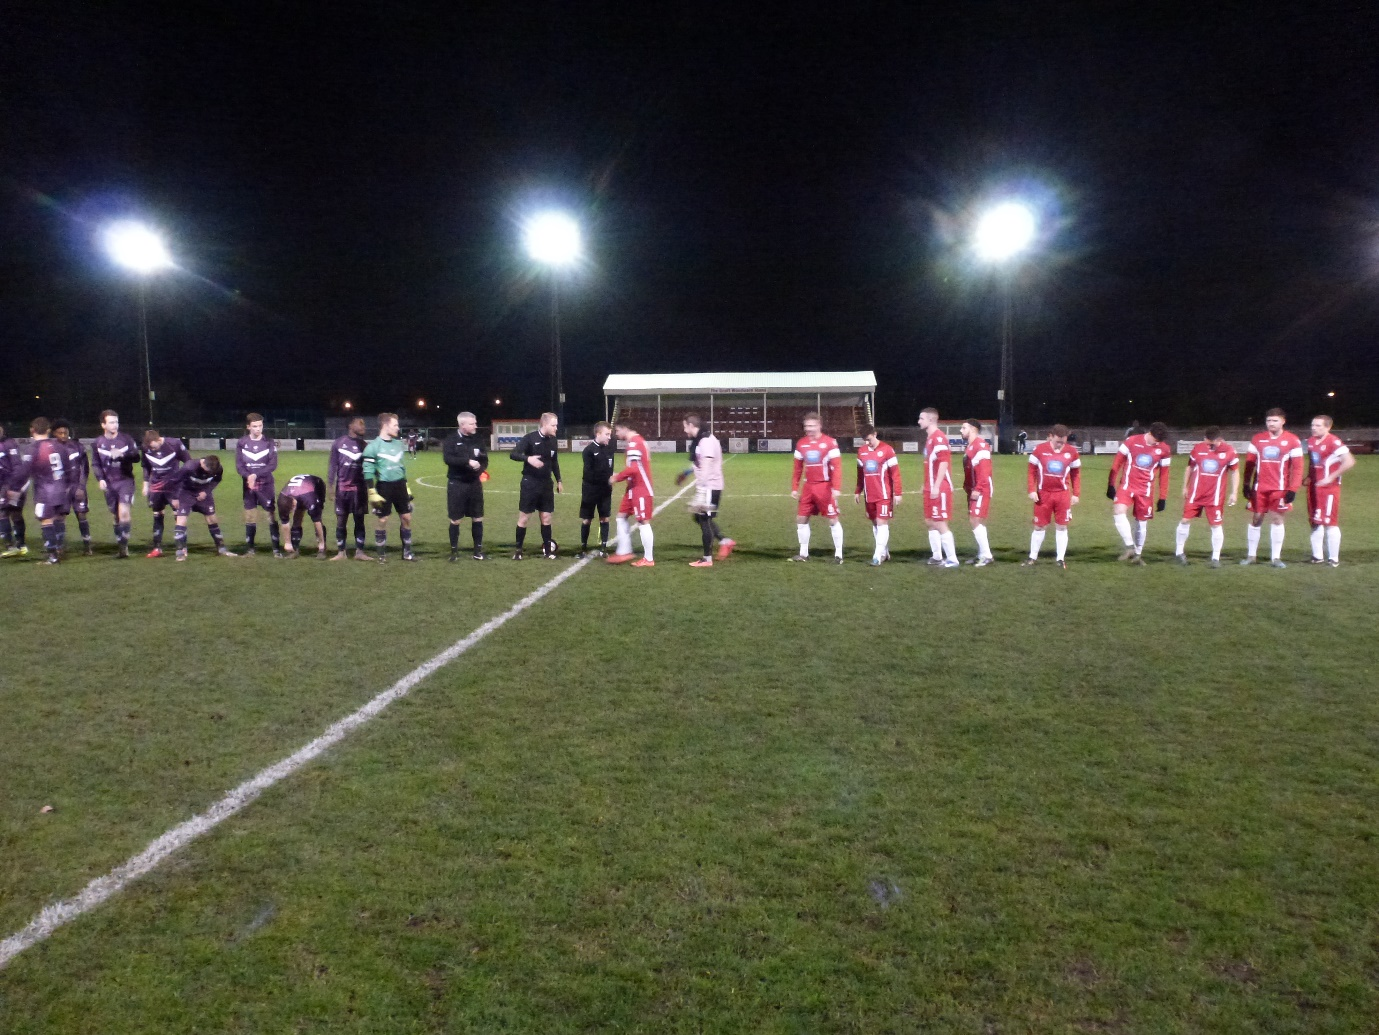 A still, cold night heralds the much-awaited contest with Loughborough playing in purple